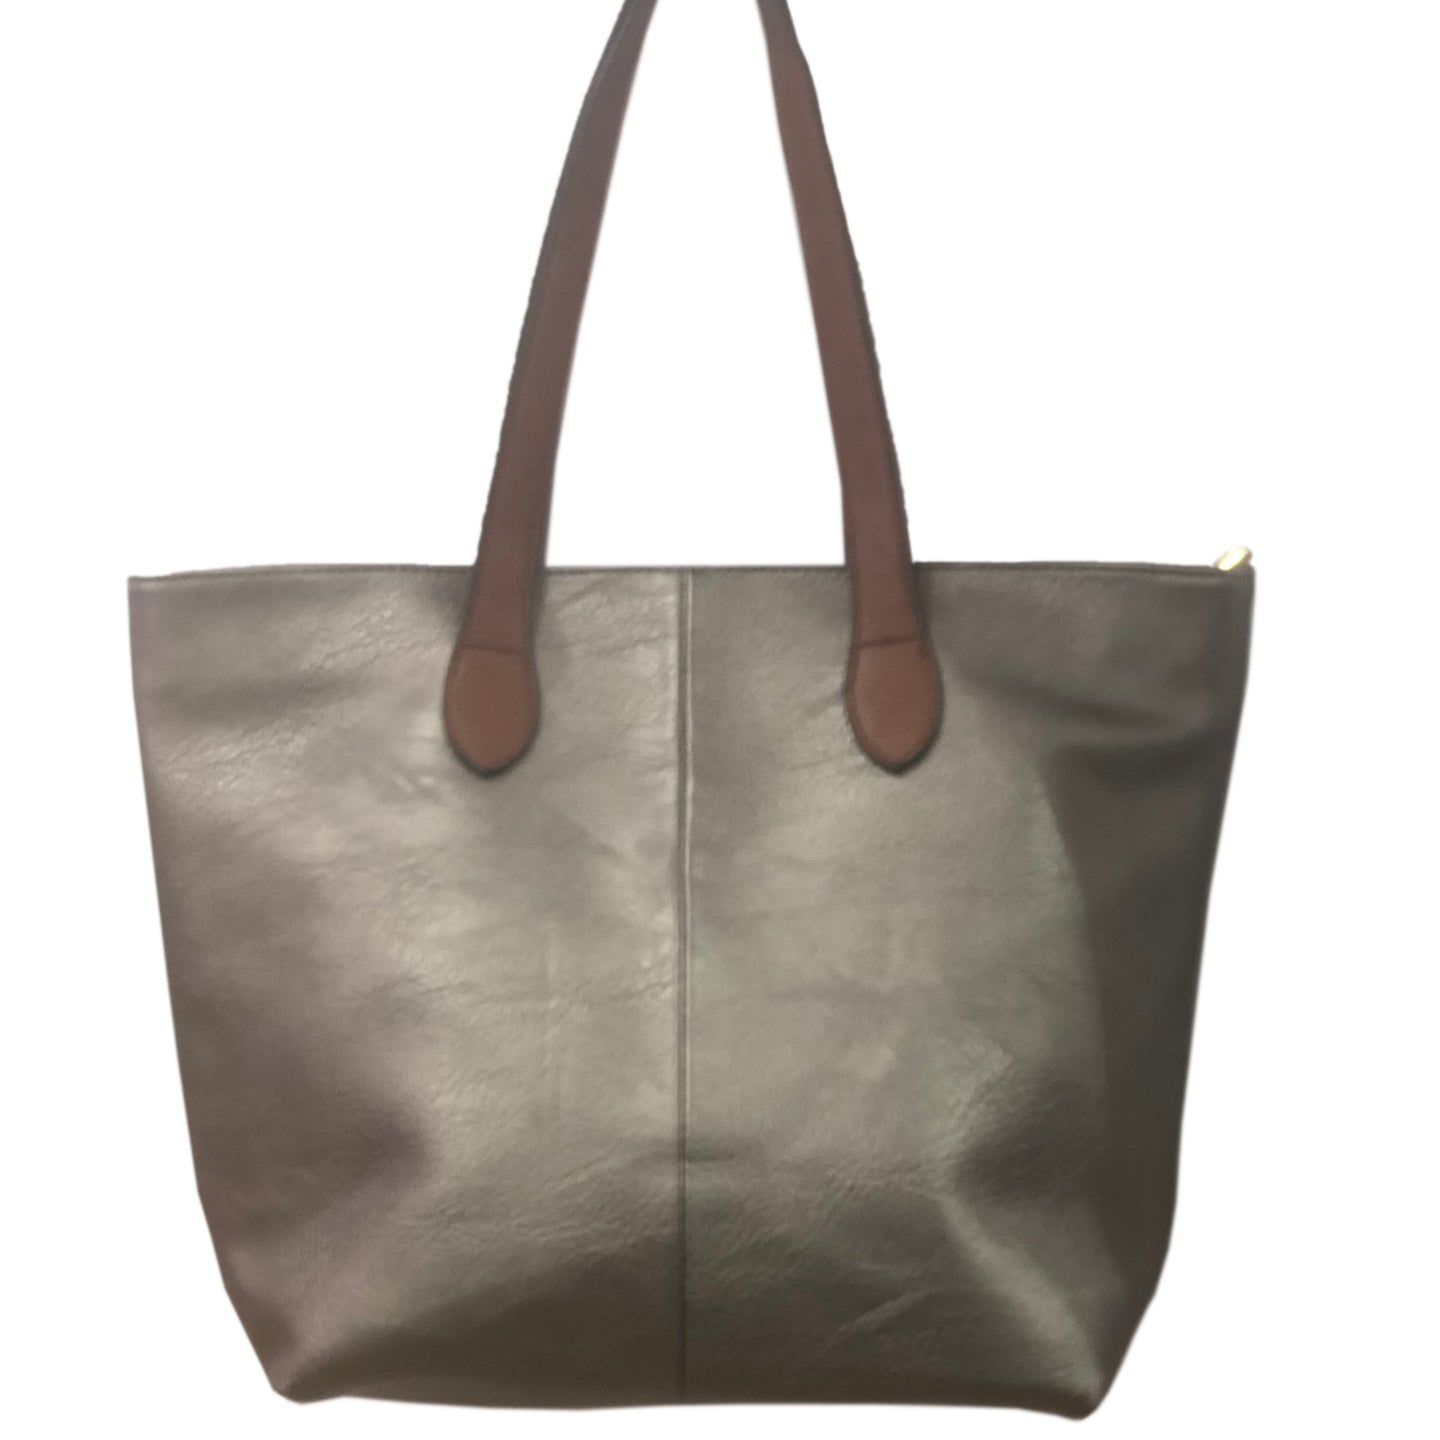 Pewter Shopper Bag- Tote handbag